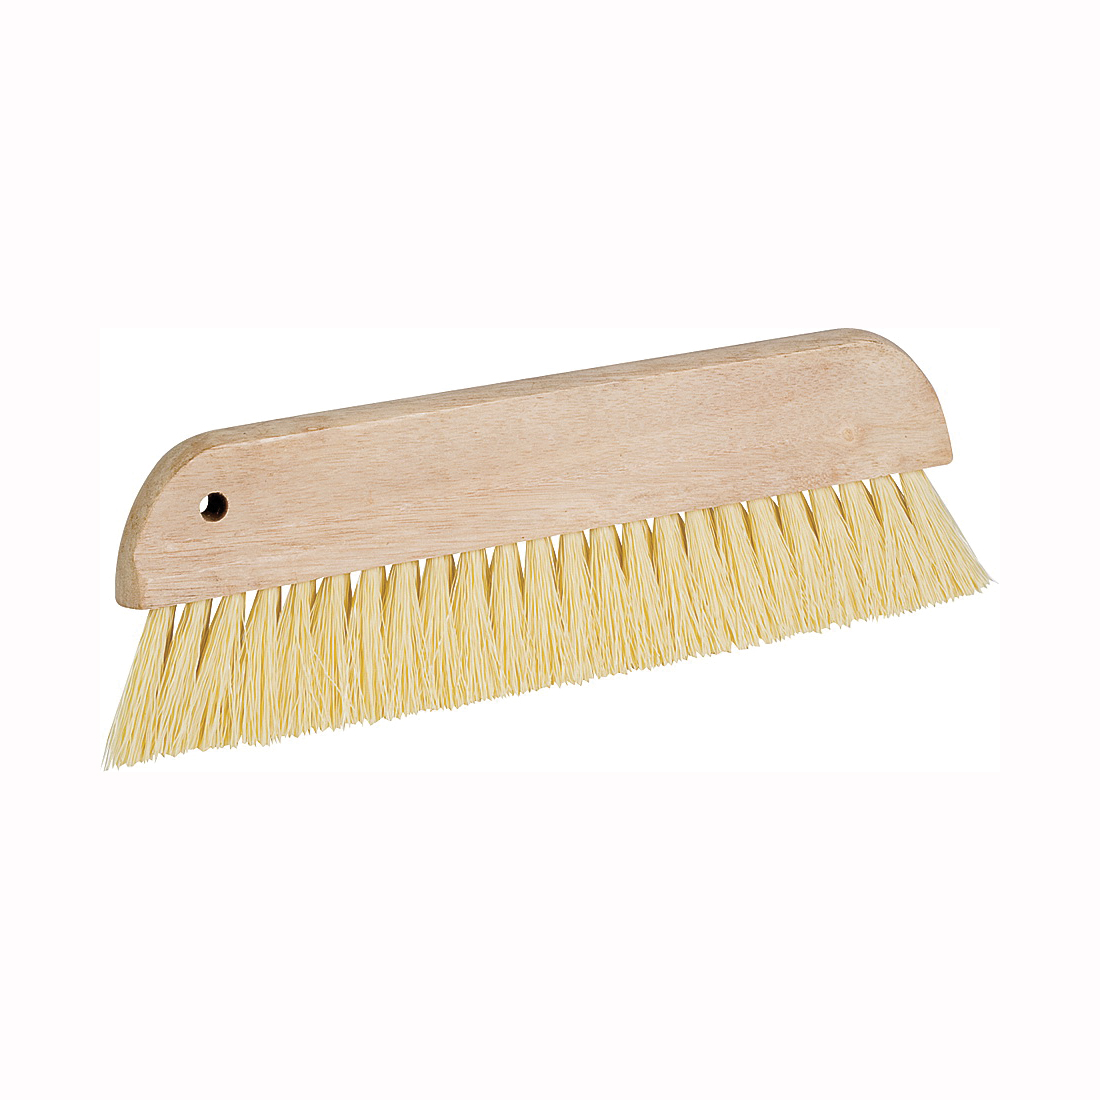 Picture of DQB 11930 Smoother Brush, Hardwood Handle